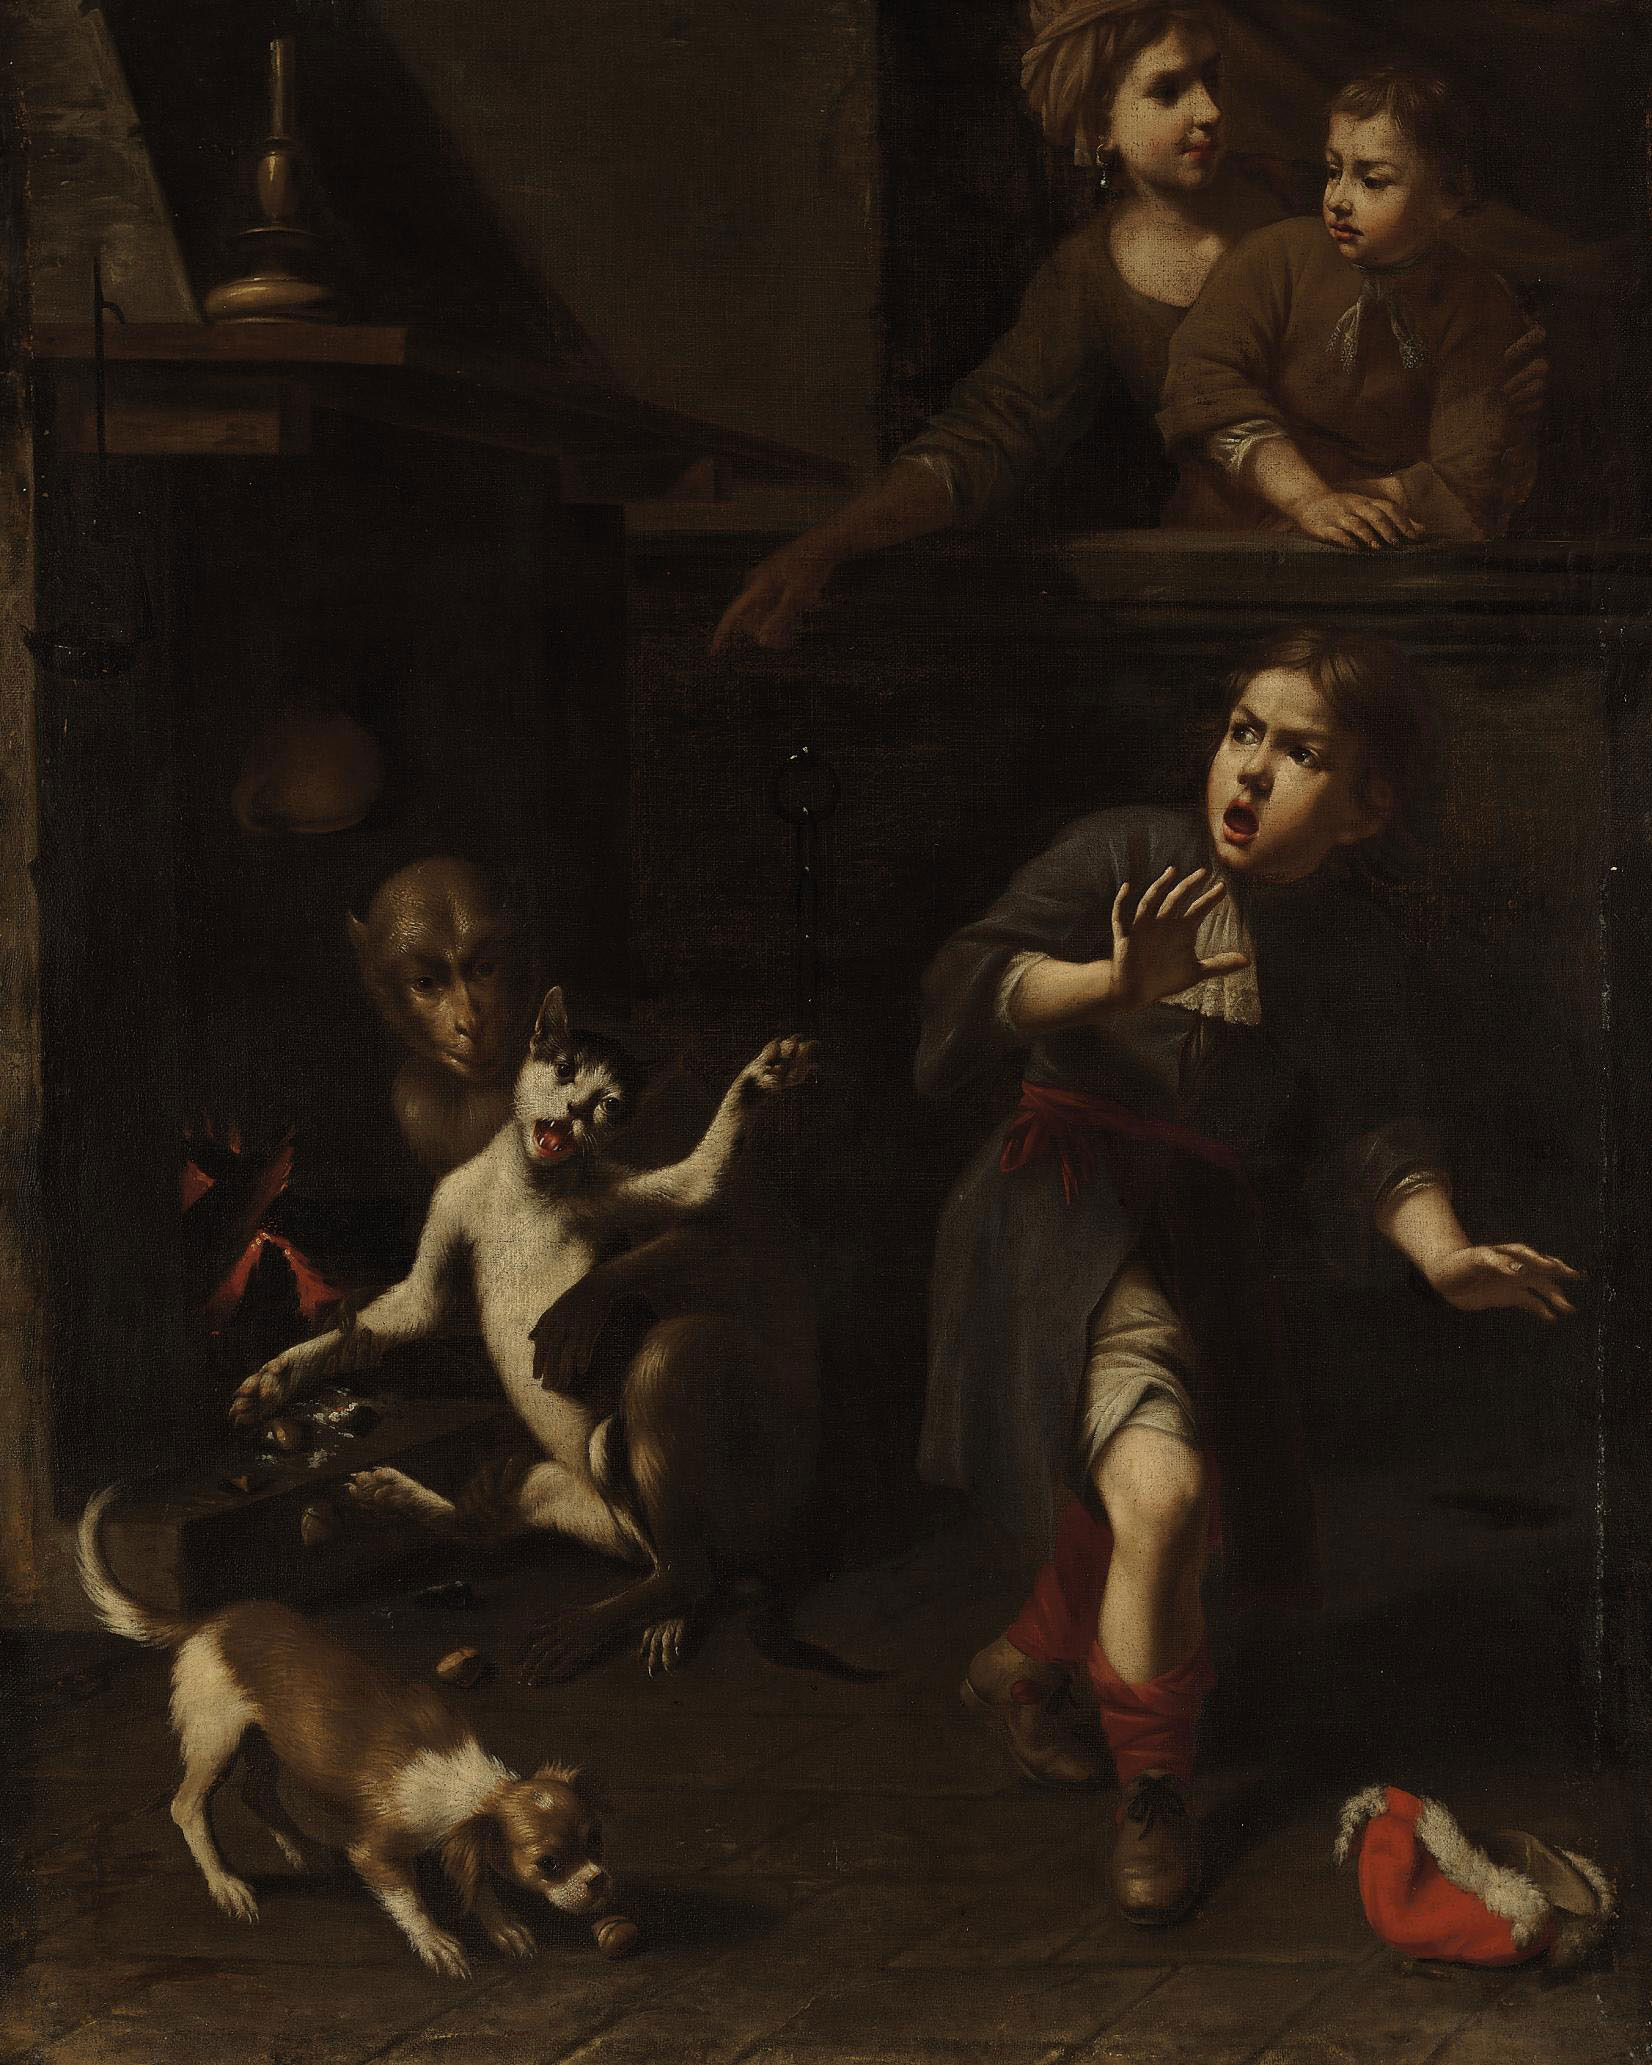 The Monkey and the Cat (Aesop's Fable)